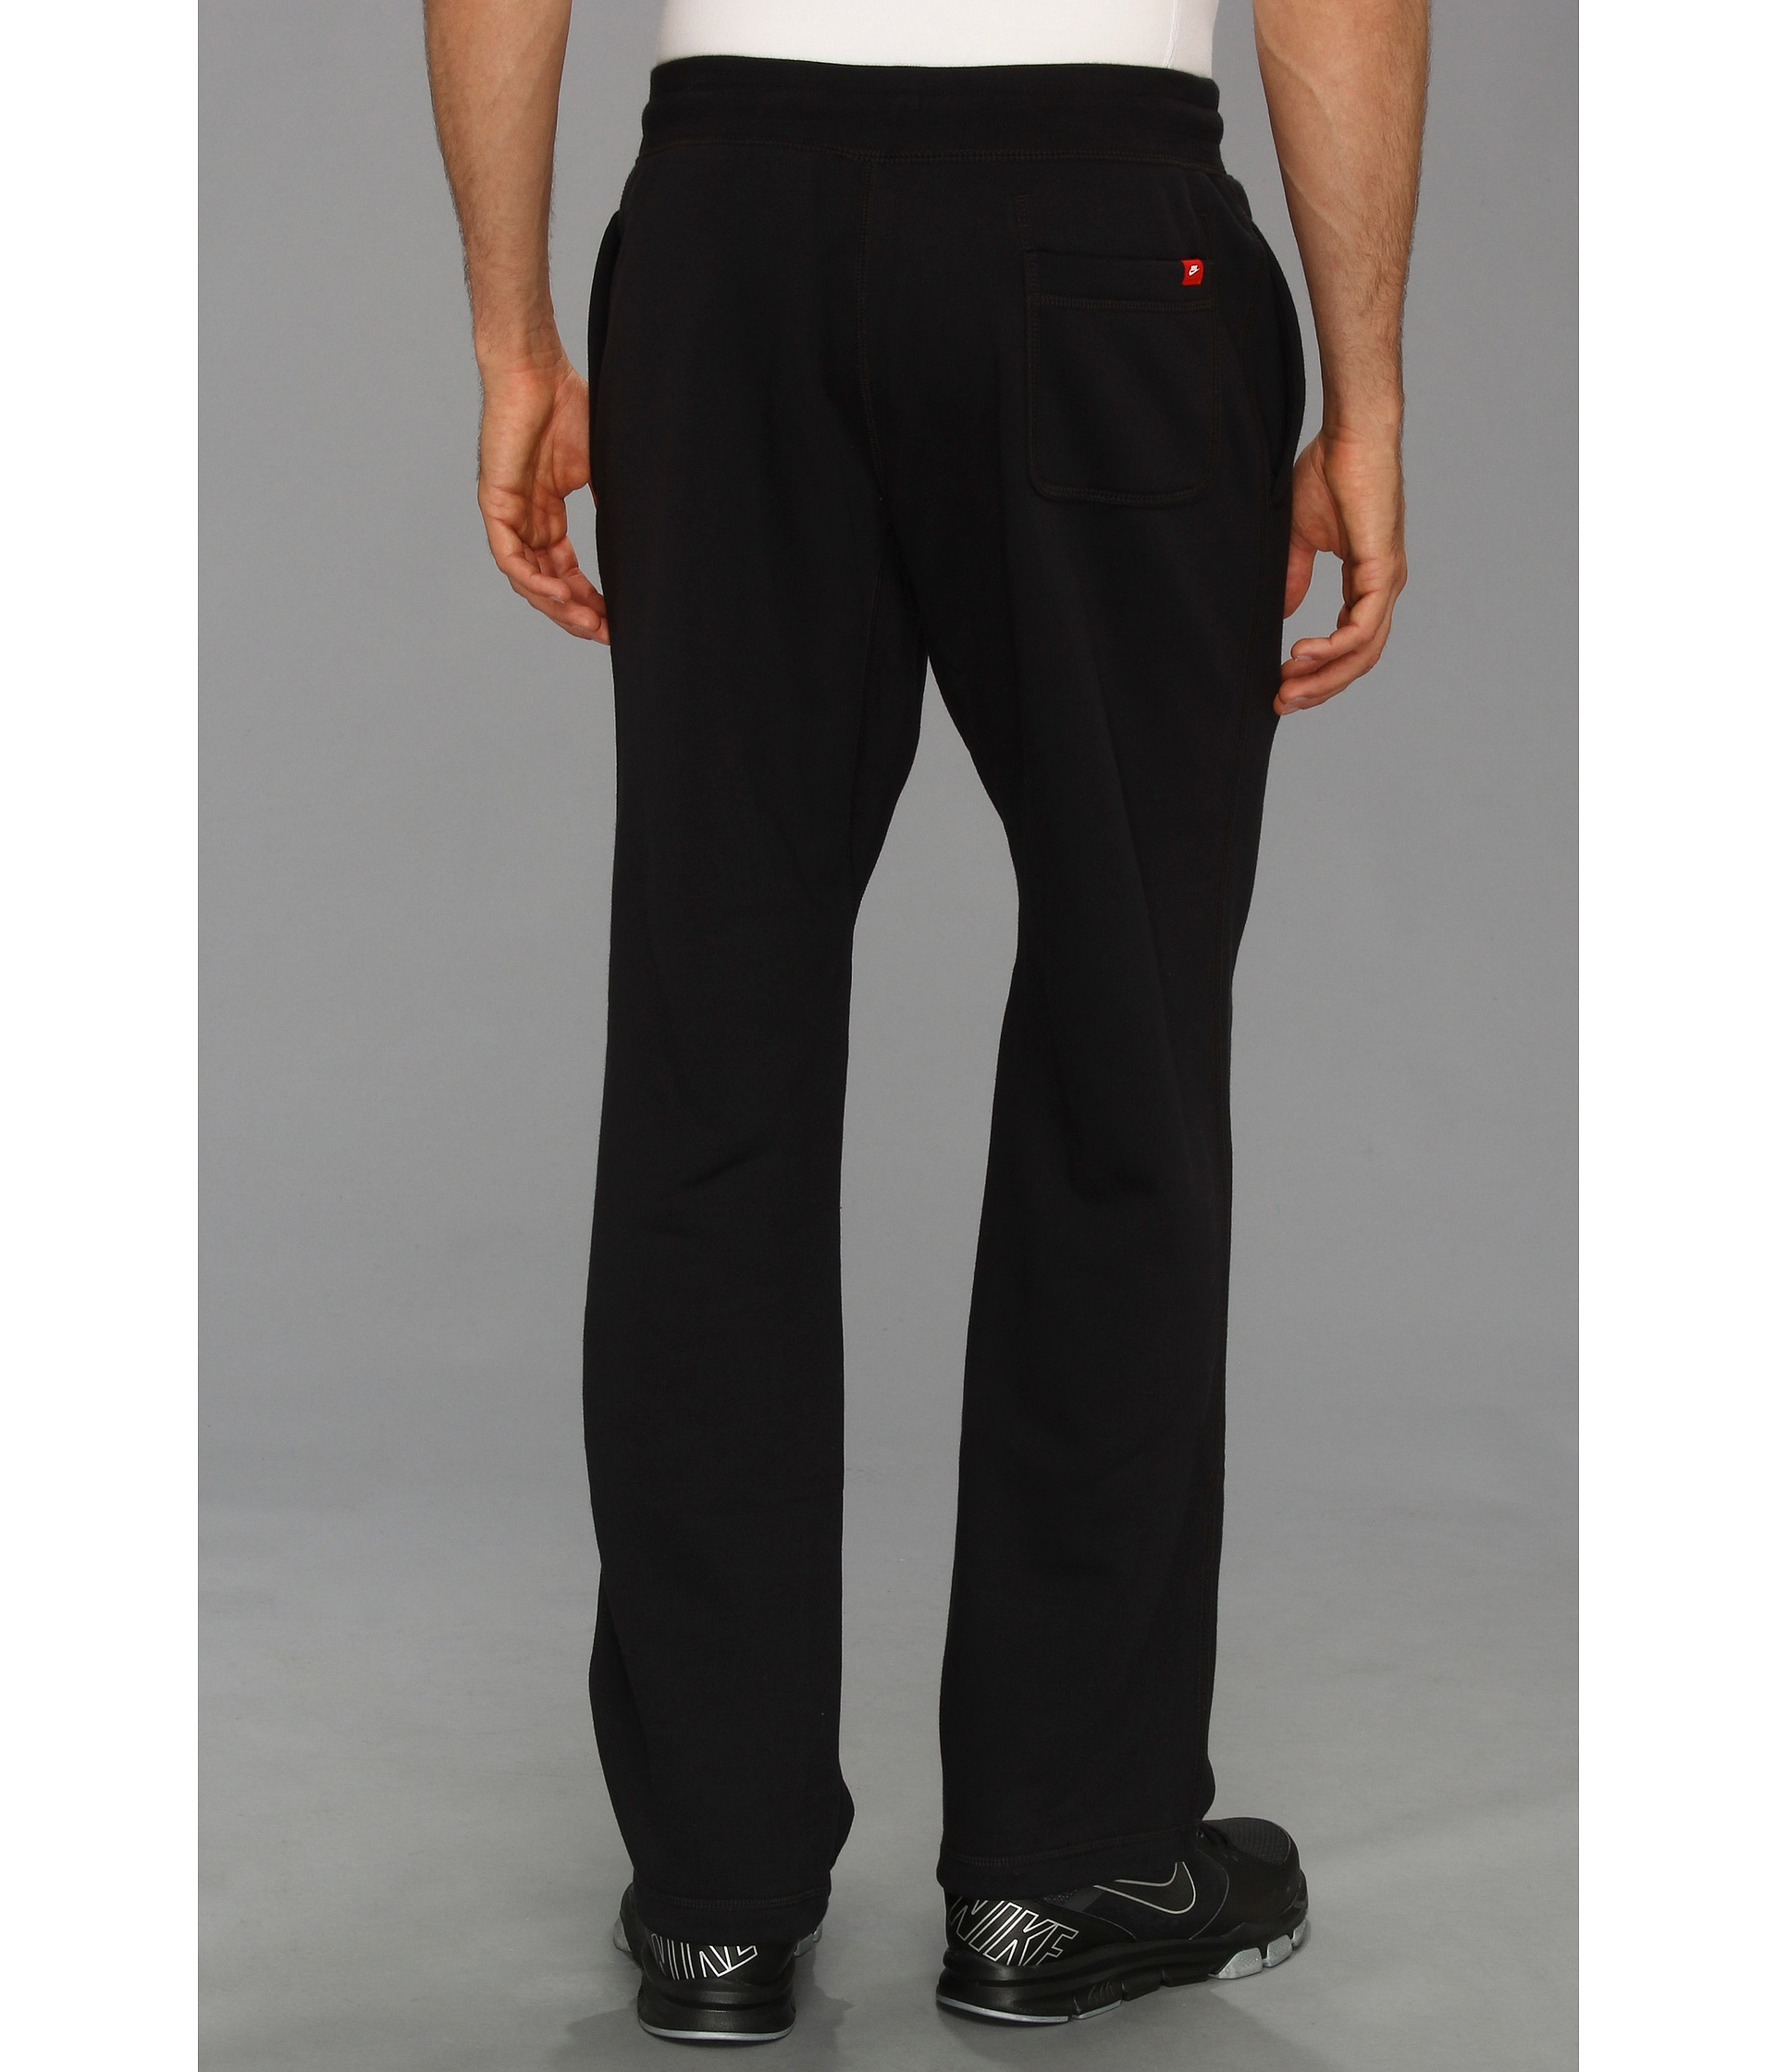 befe1bdb813b5 Nike Ace Open-hem Fleece Pants in Black for Men - Lyst